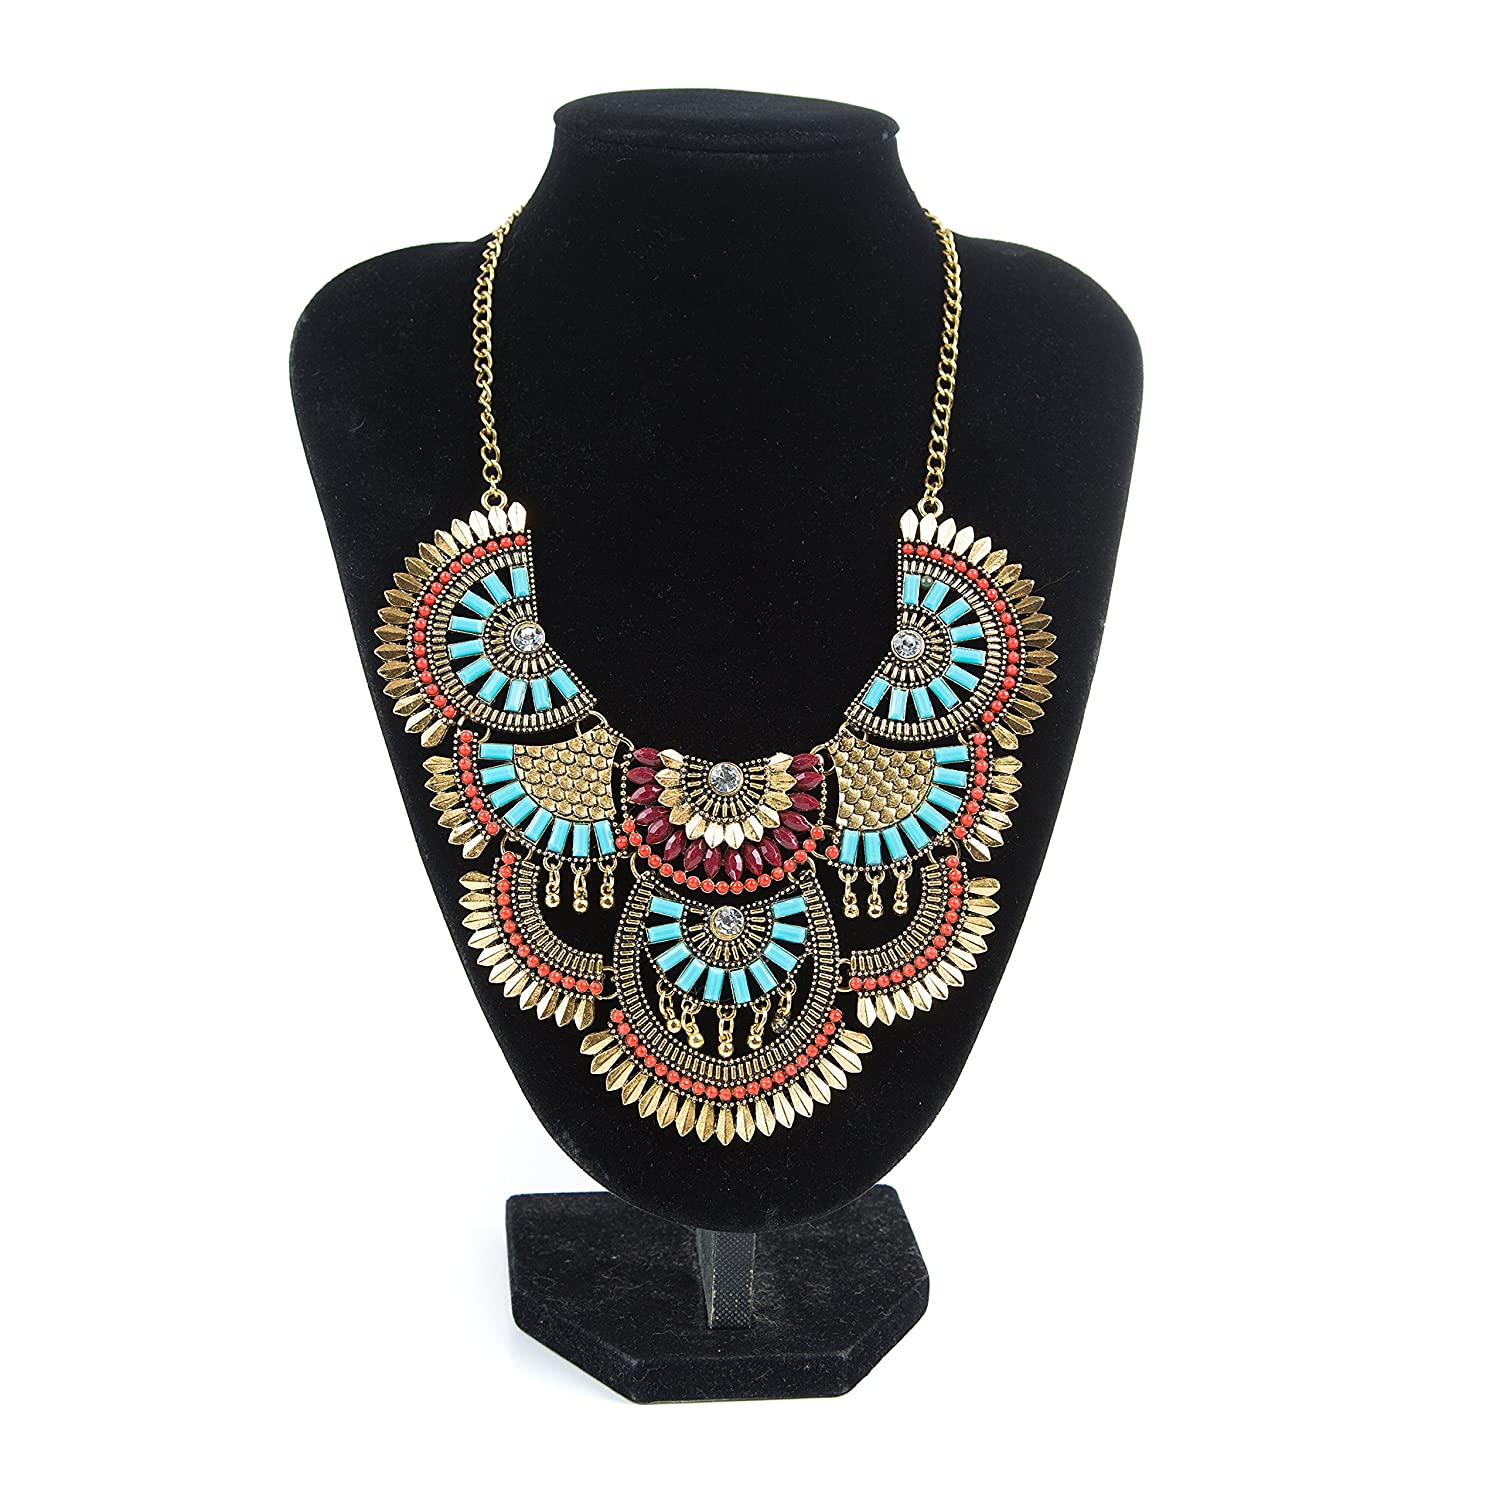 Miraculous Garden Womens Vintage Alloy Silver/Gold Boho Bohemian Necklace Ethnic Tribal Boho Necklace Turquoise Beads Crystal Necklace Huixin Jewelry HXVN0113B-G